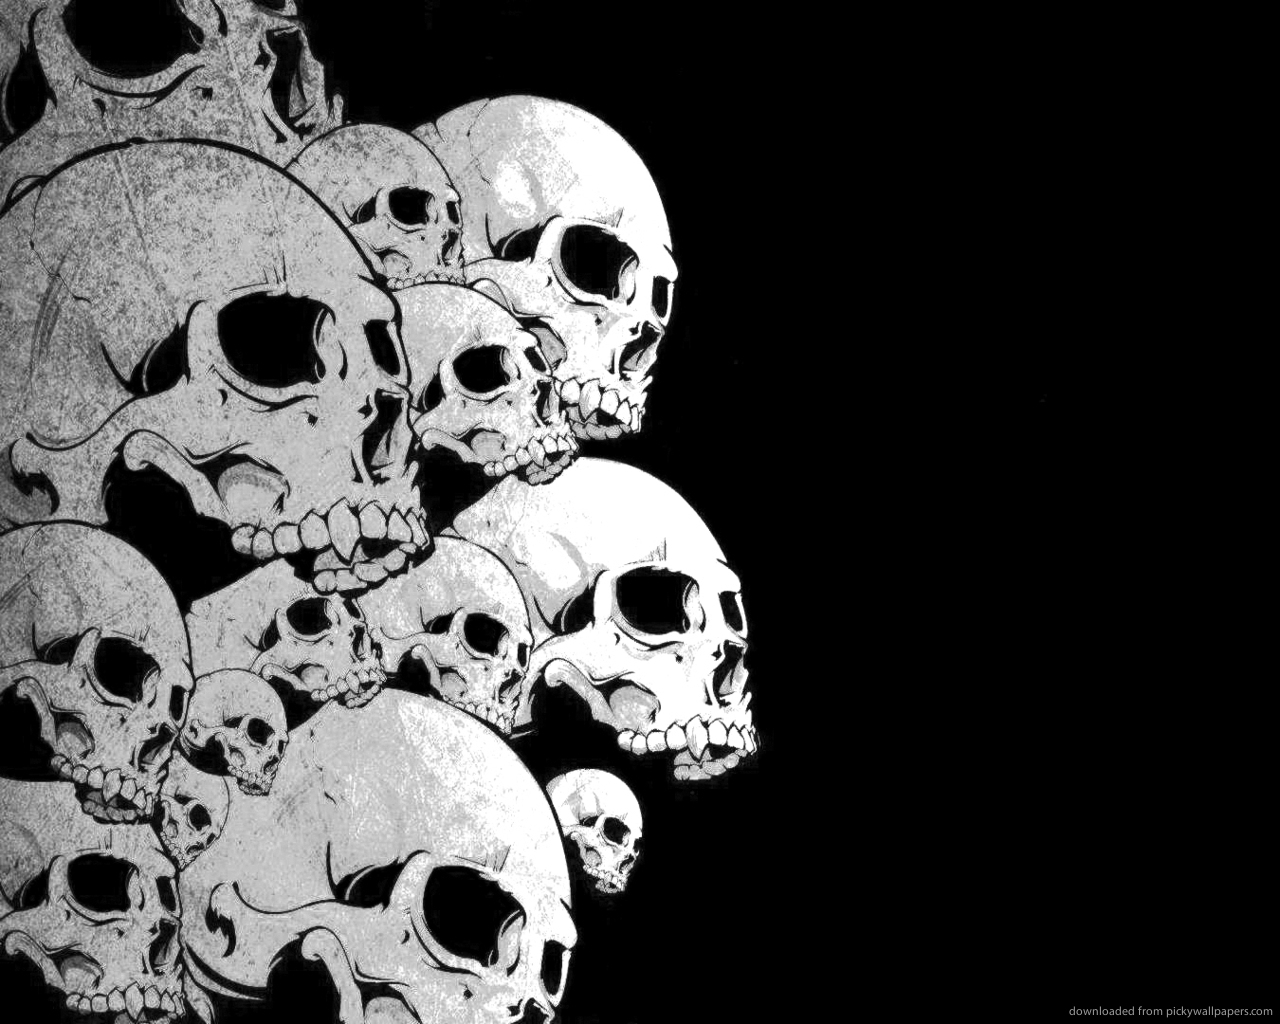 1280x1024 Pile Of Skulls Drawing A Pile Of Skulls The Muslim Issue